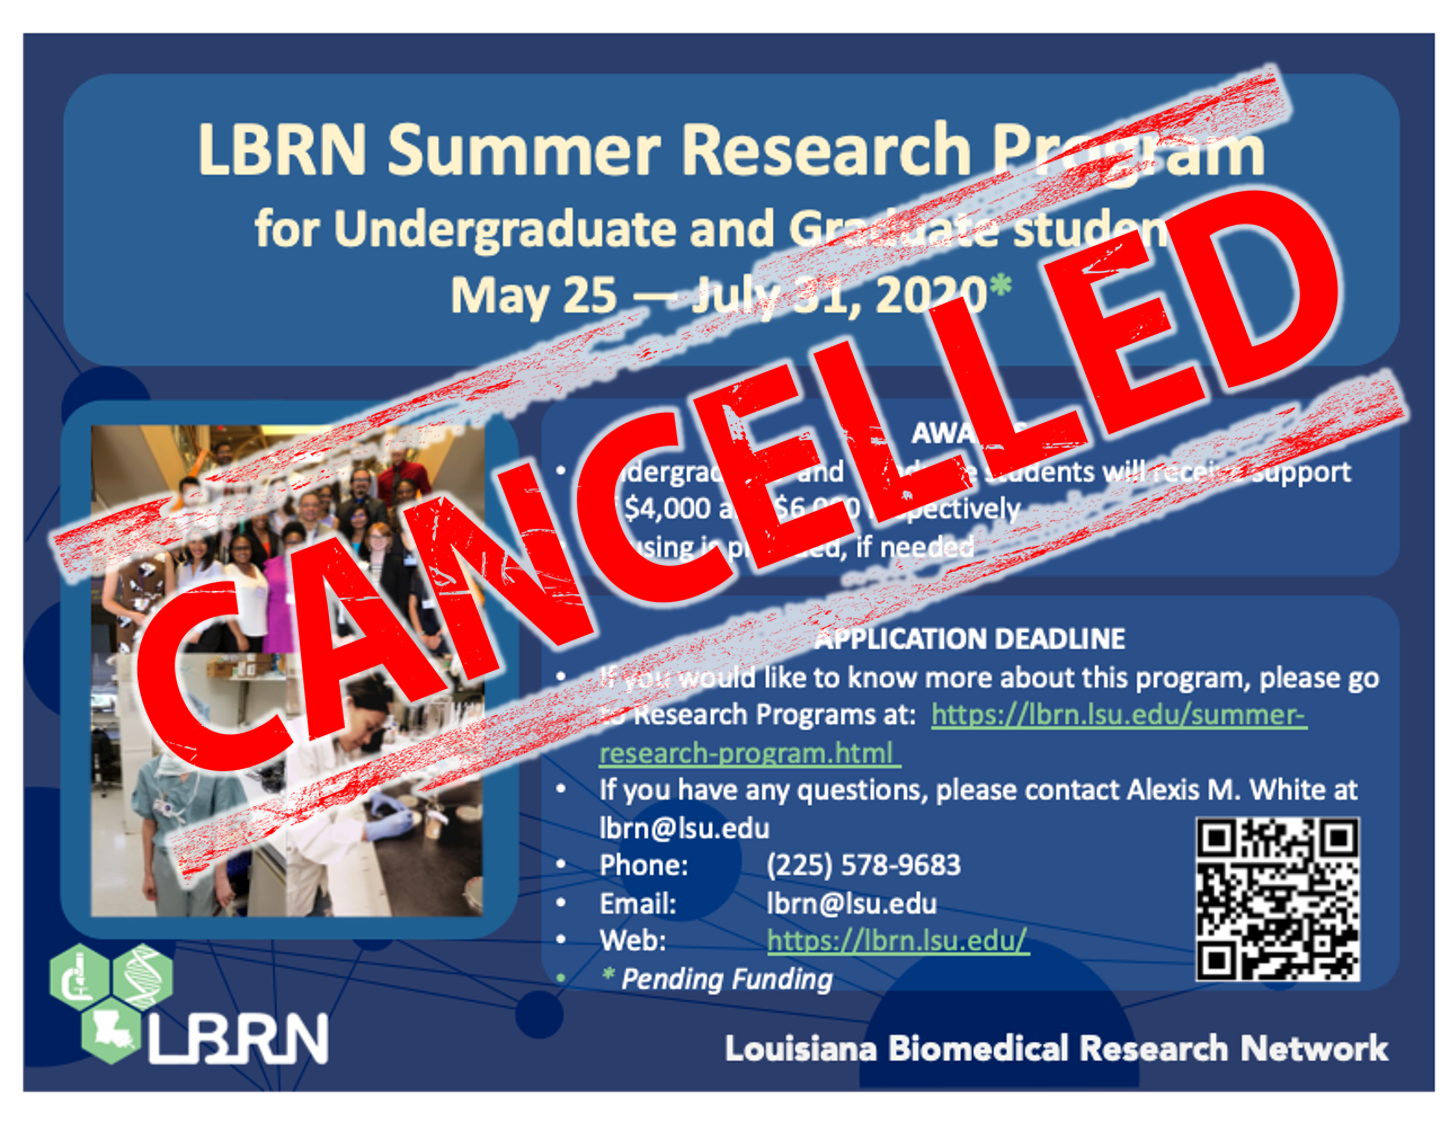 LBRN Summer Research Program 2020 Cancelled